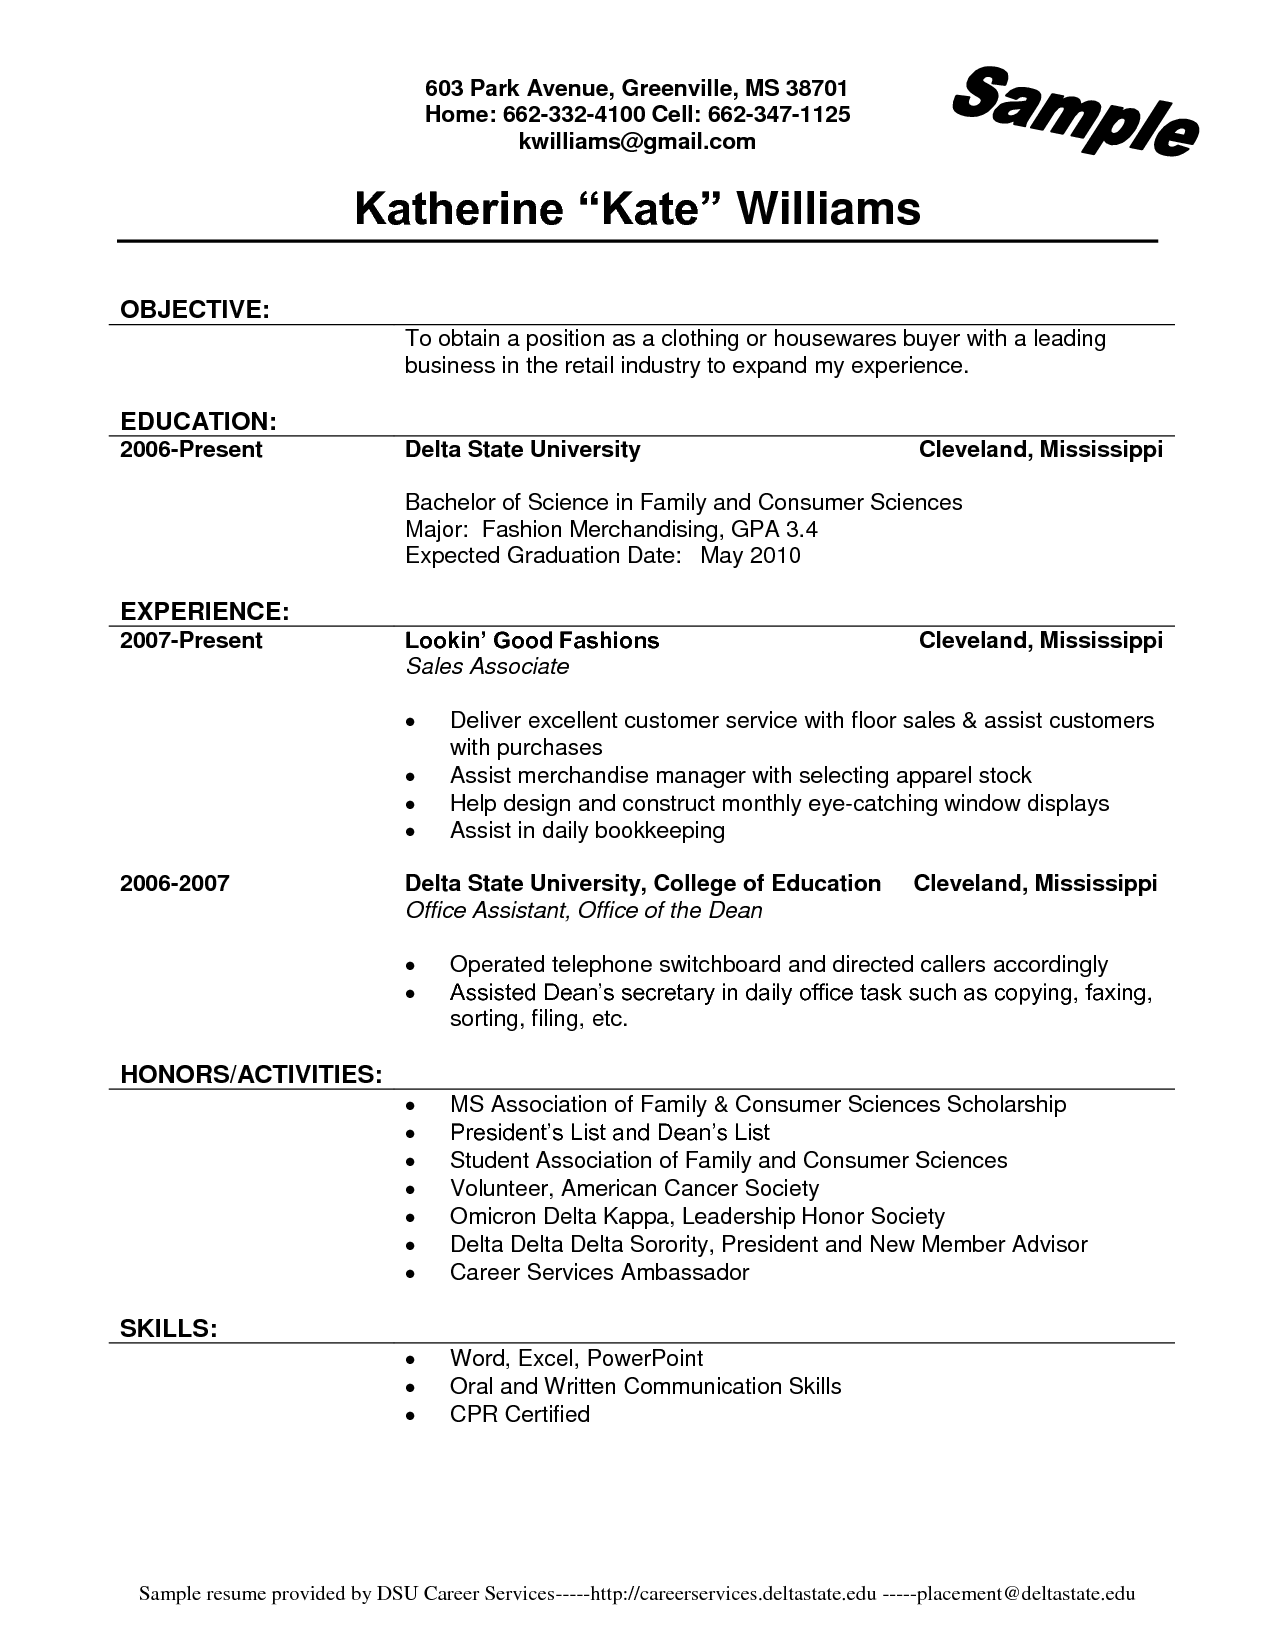 Ministry Resume Templates Pinresumeweb On Job Resume Format  Pinterest  Job Resume